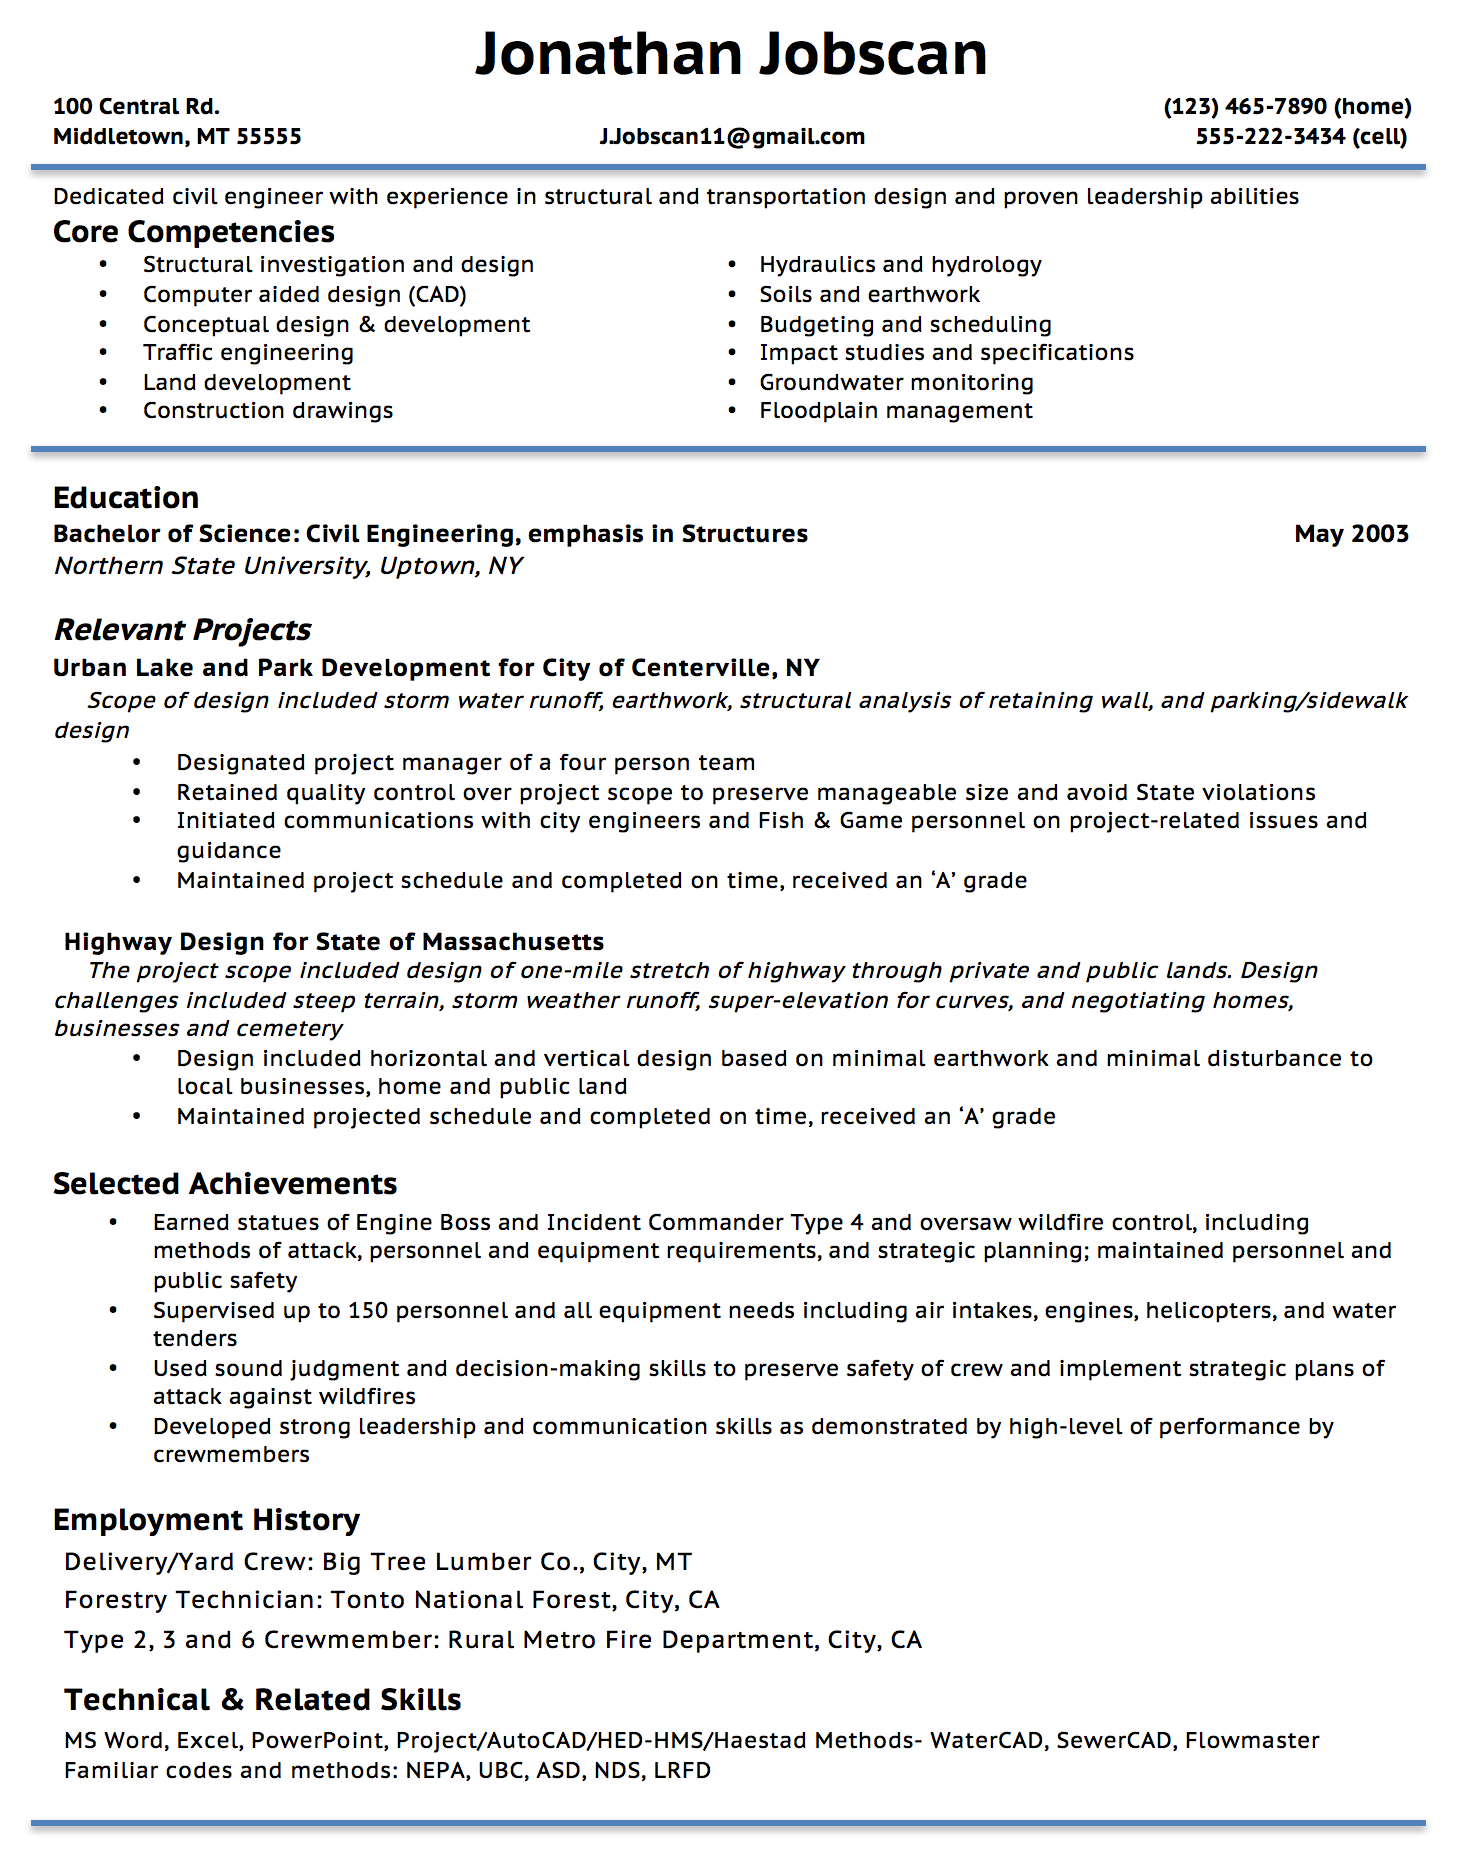 Picnictoimpeachus  Seductive Resume Writing Guide  Jobscan With Hot Example Of A Functional Resume Format With Beautiful Chaplain Resume Also Police Dispatcher Resume In Addition Bootstrap Resume Template And Marketing Associate Resume As Well As How To Make Job Resume Additionally Resume Format Google Docs From Jobscanco With Picnictoimpeachus  Hot Resume Writing Guide  Jobscan With Beautiful Example Of A Functional Resume Format And Seductive Chaplain Resume Also Police Dispatcher Resume In Addition Bootstrap Resume Template From Jobscanco